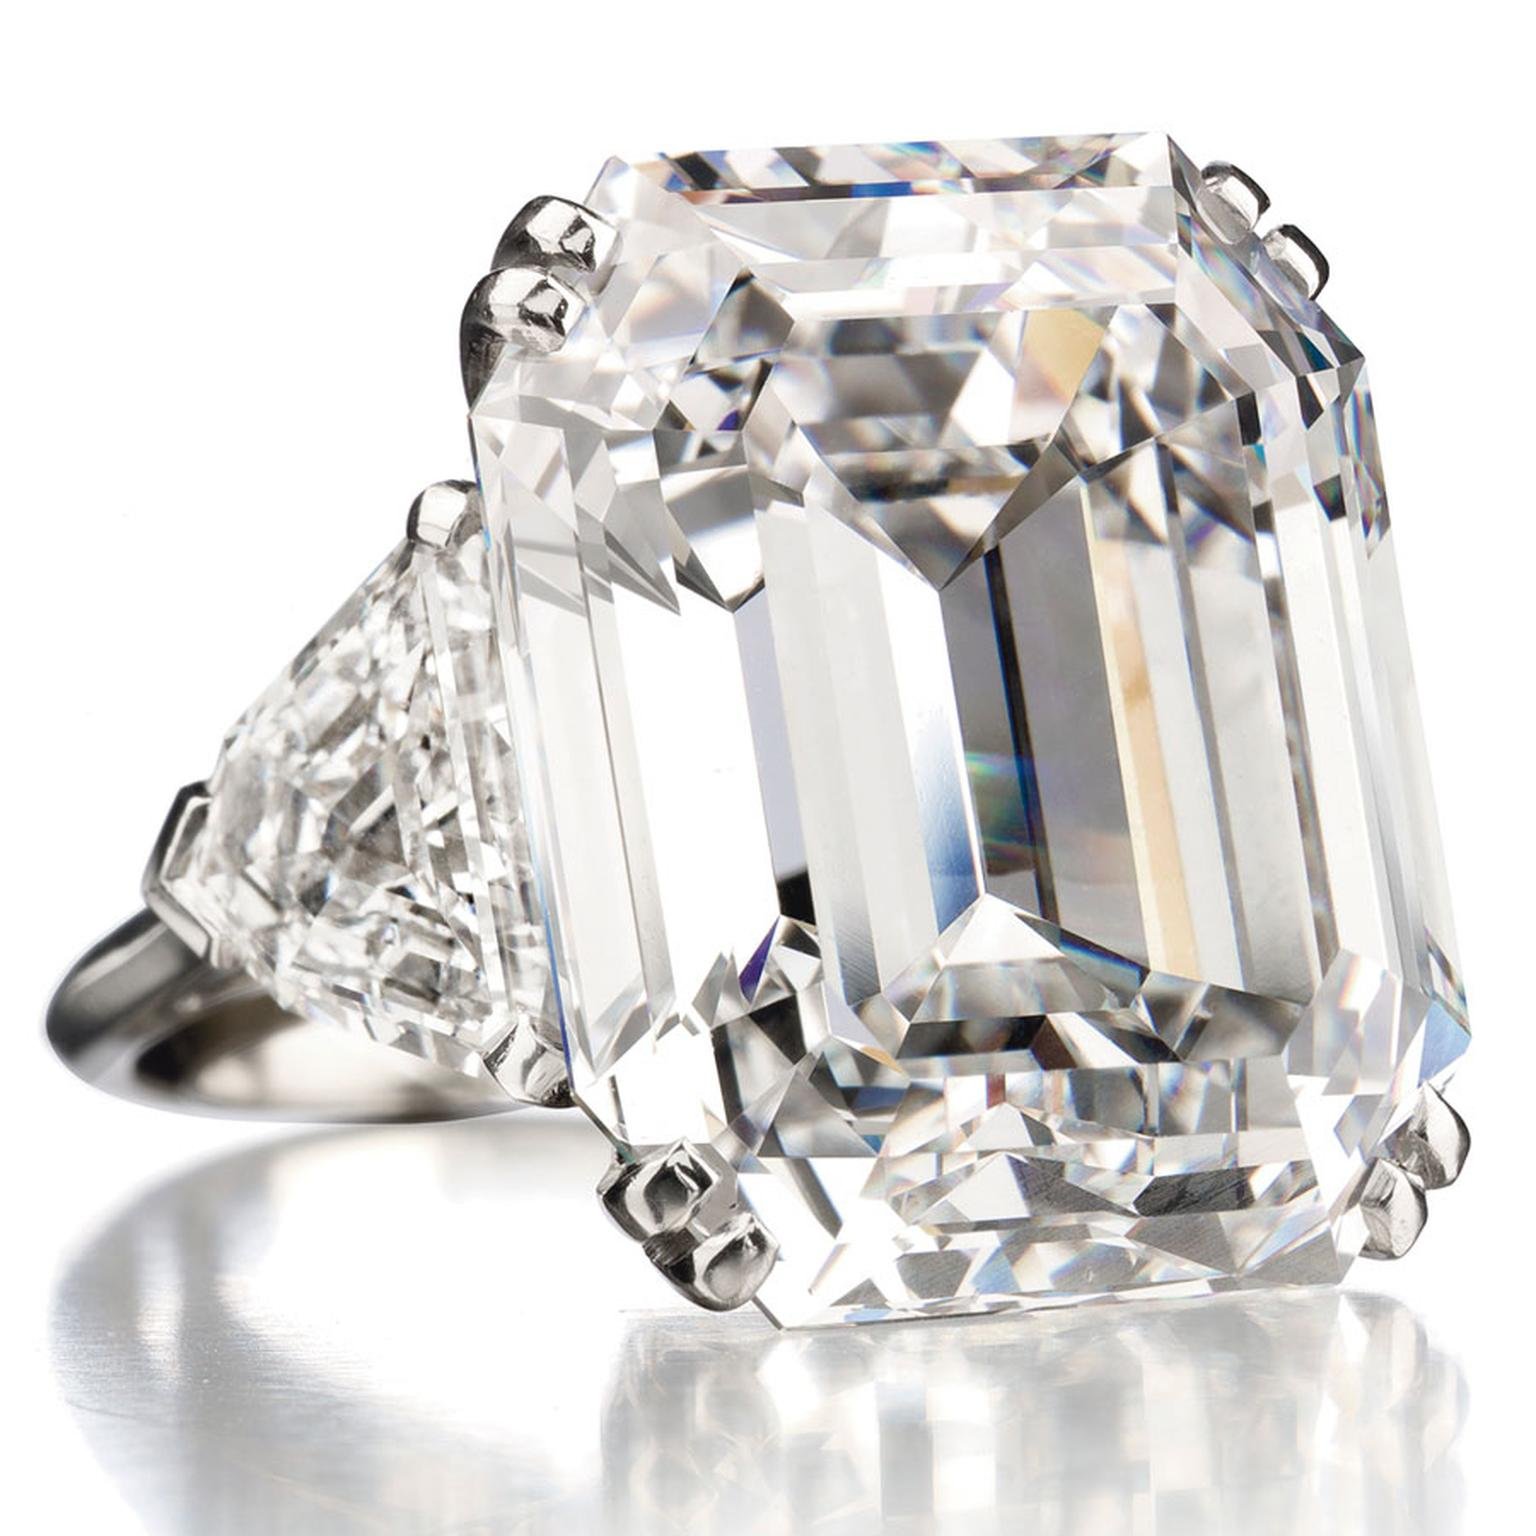 Christies carats-rectangular-cut-diamond-ring